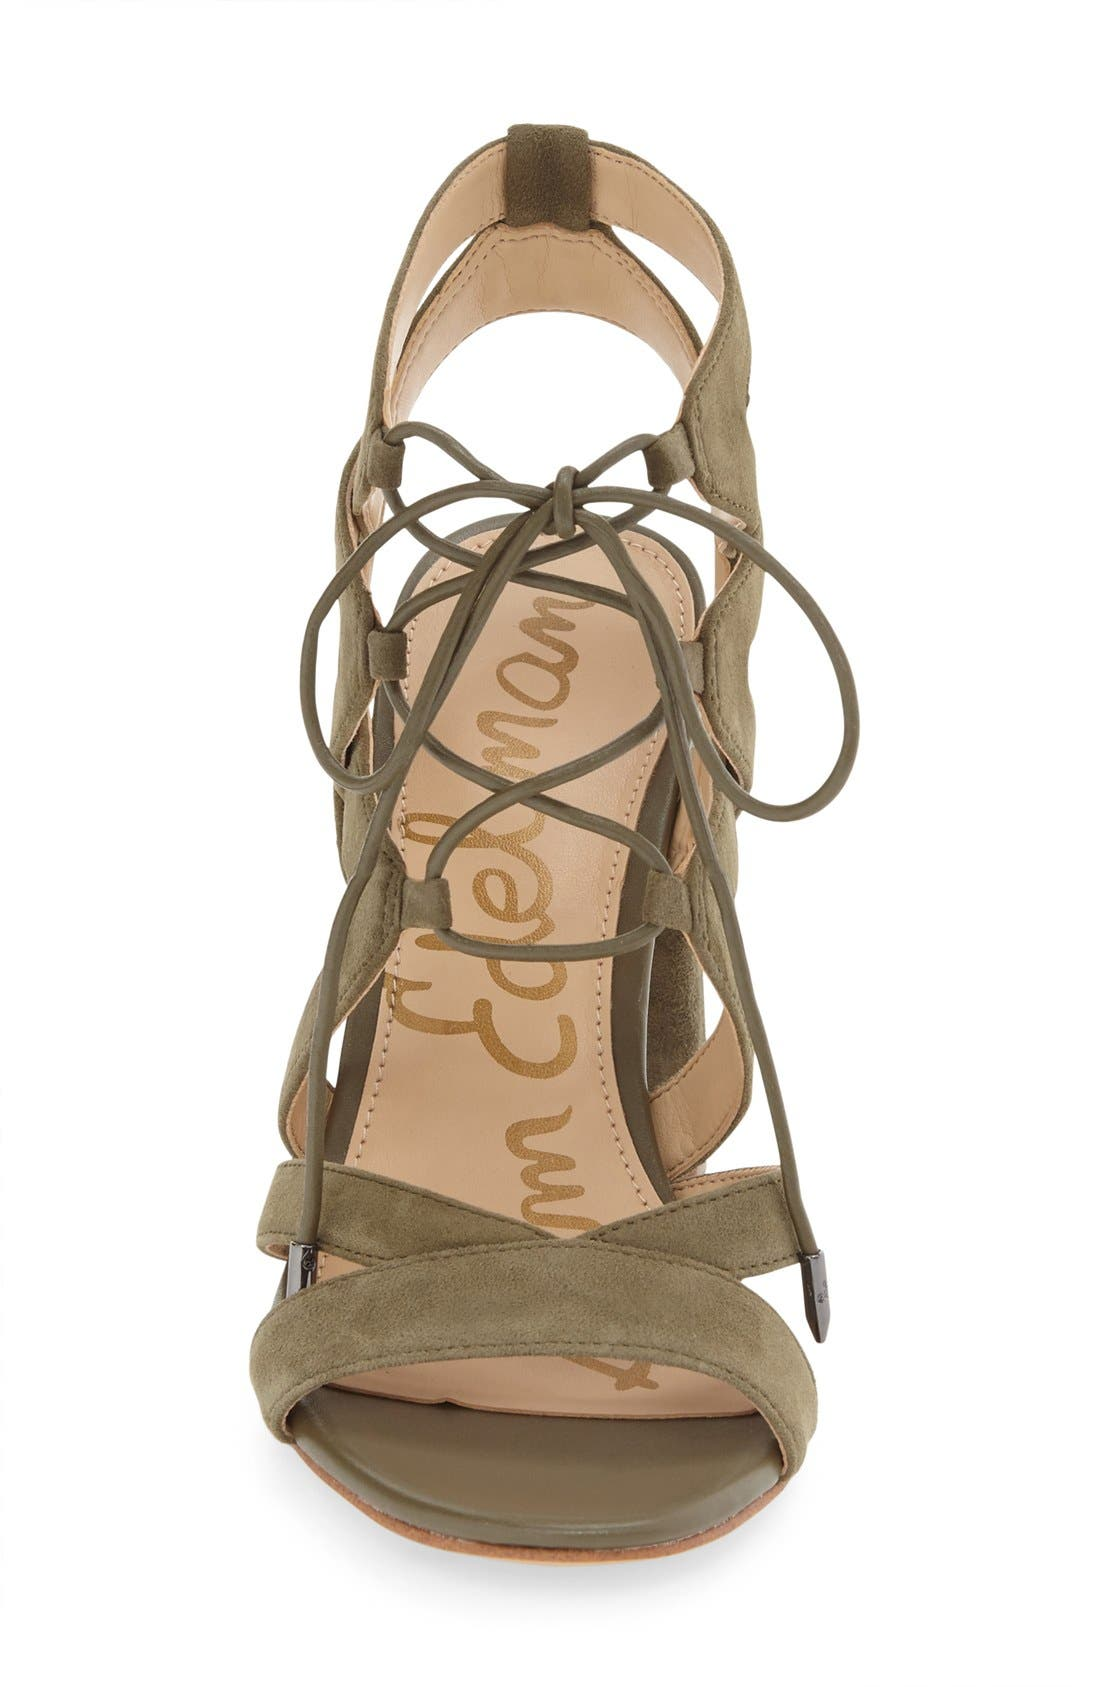 'Yardley' Lace-Up Sandal,                             Alternate thumbnail 4, color,                             Moss Green Suede Leather